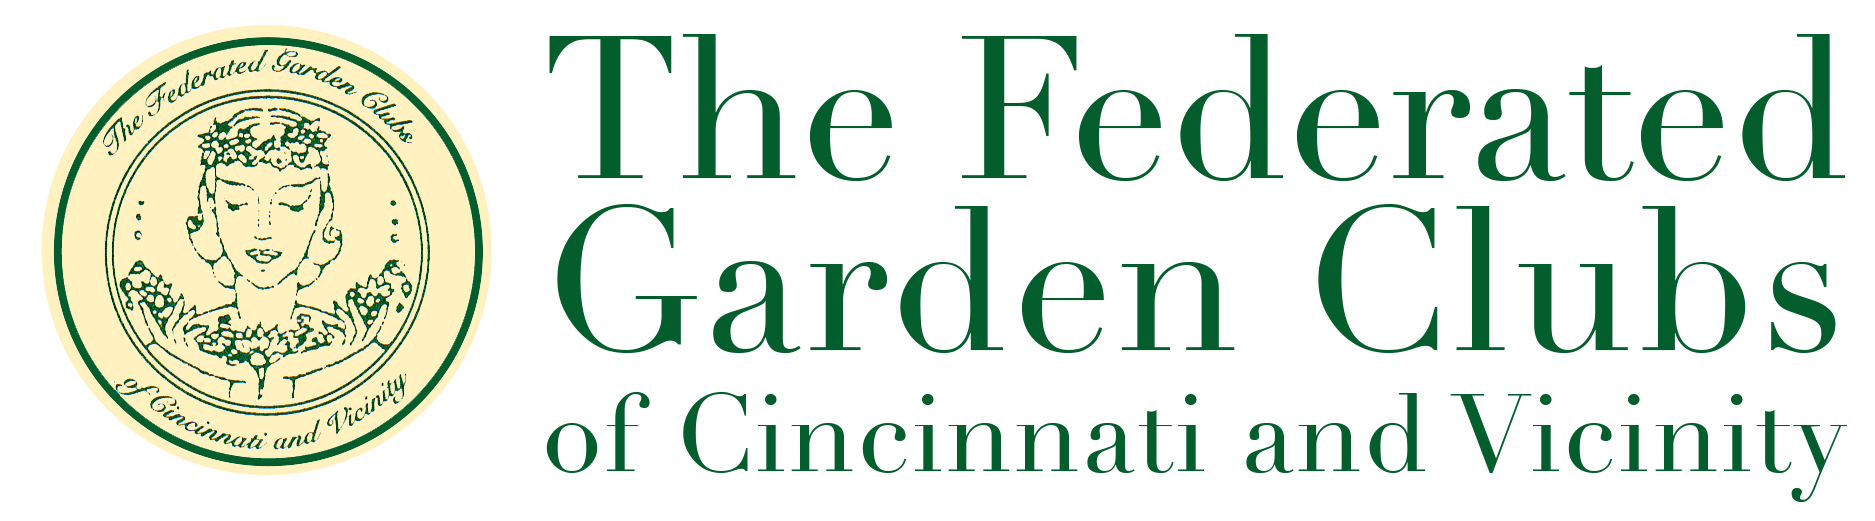 Members of The Federated Garden Clubs of Cincinnati and Vicinity on